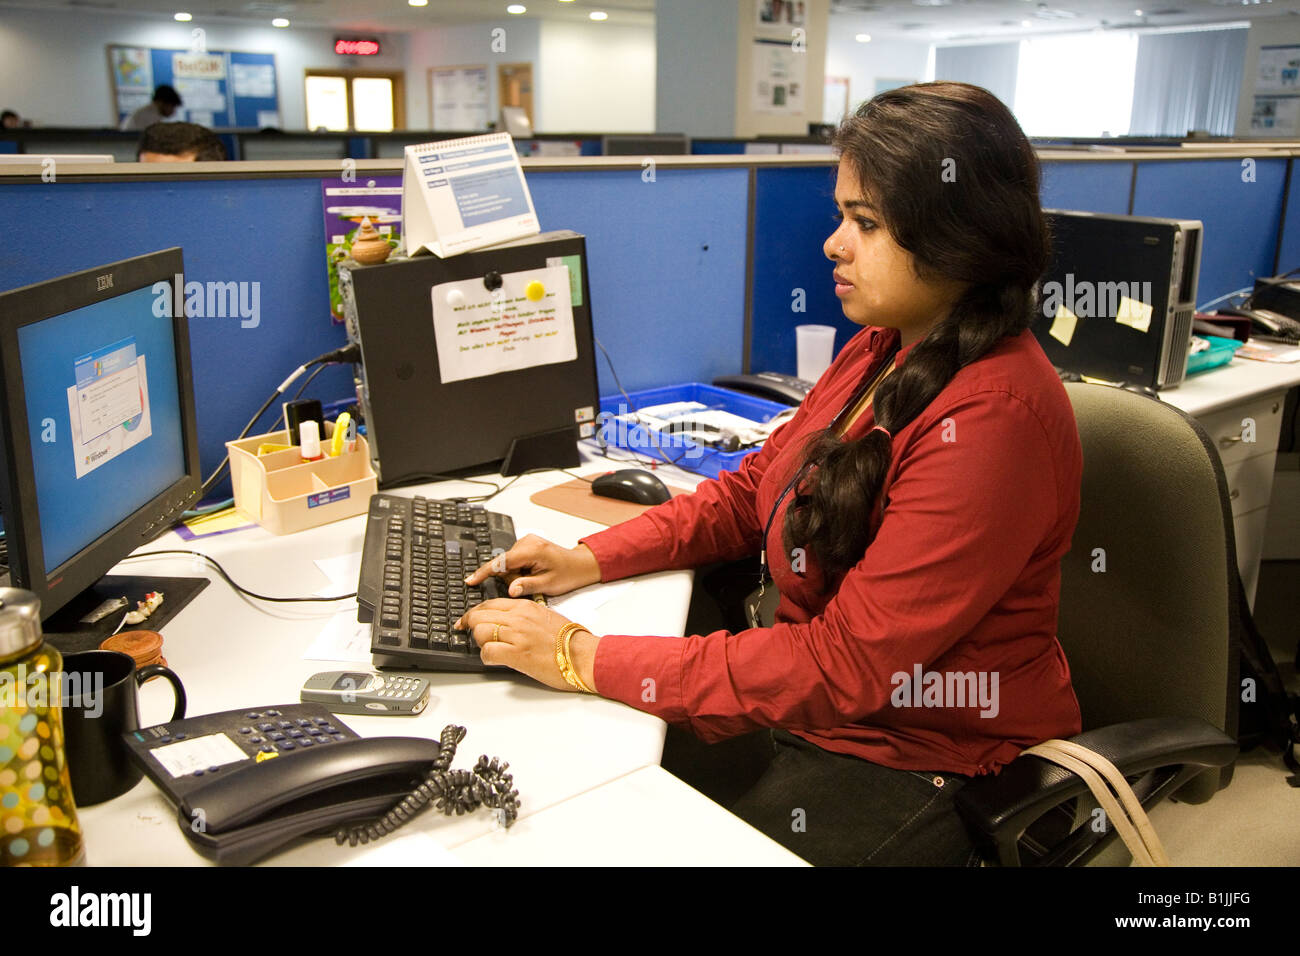 software company office. a woman works at desk in the office of company which produces software and technology driven products bangalore india